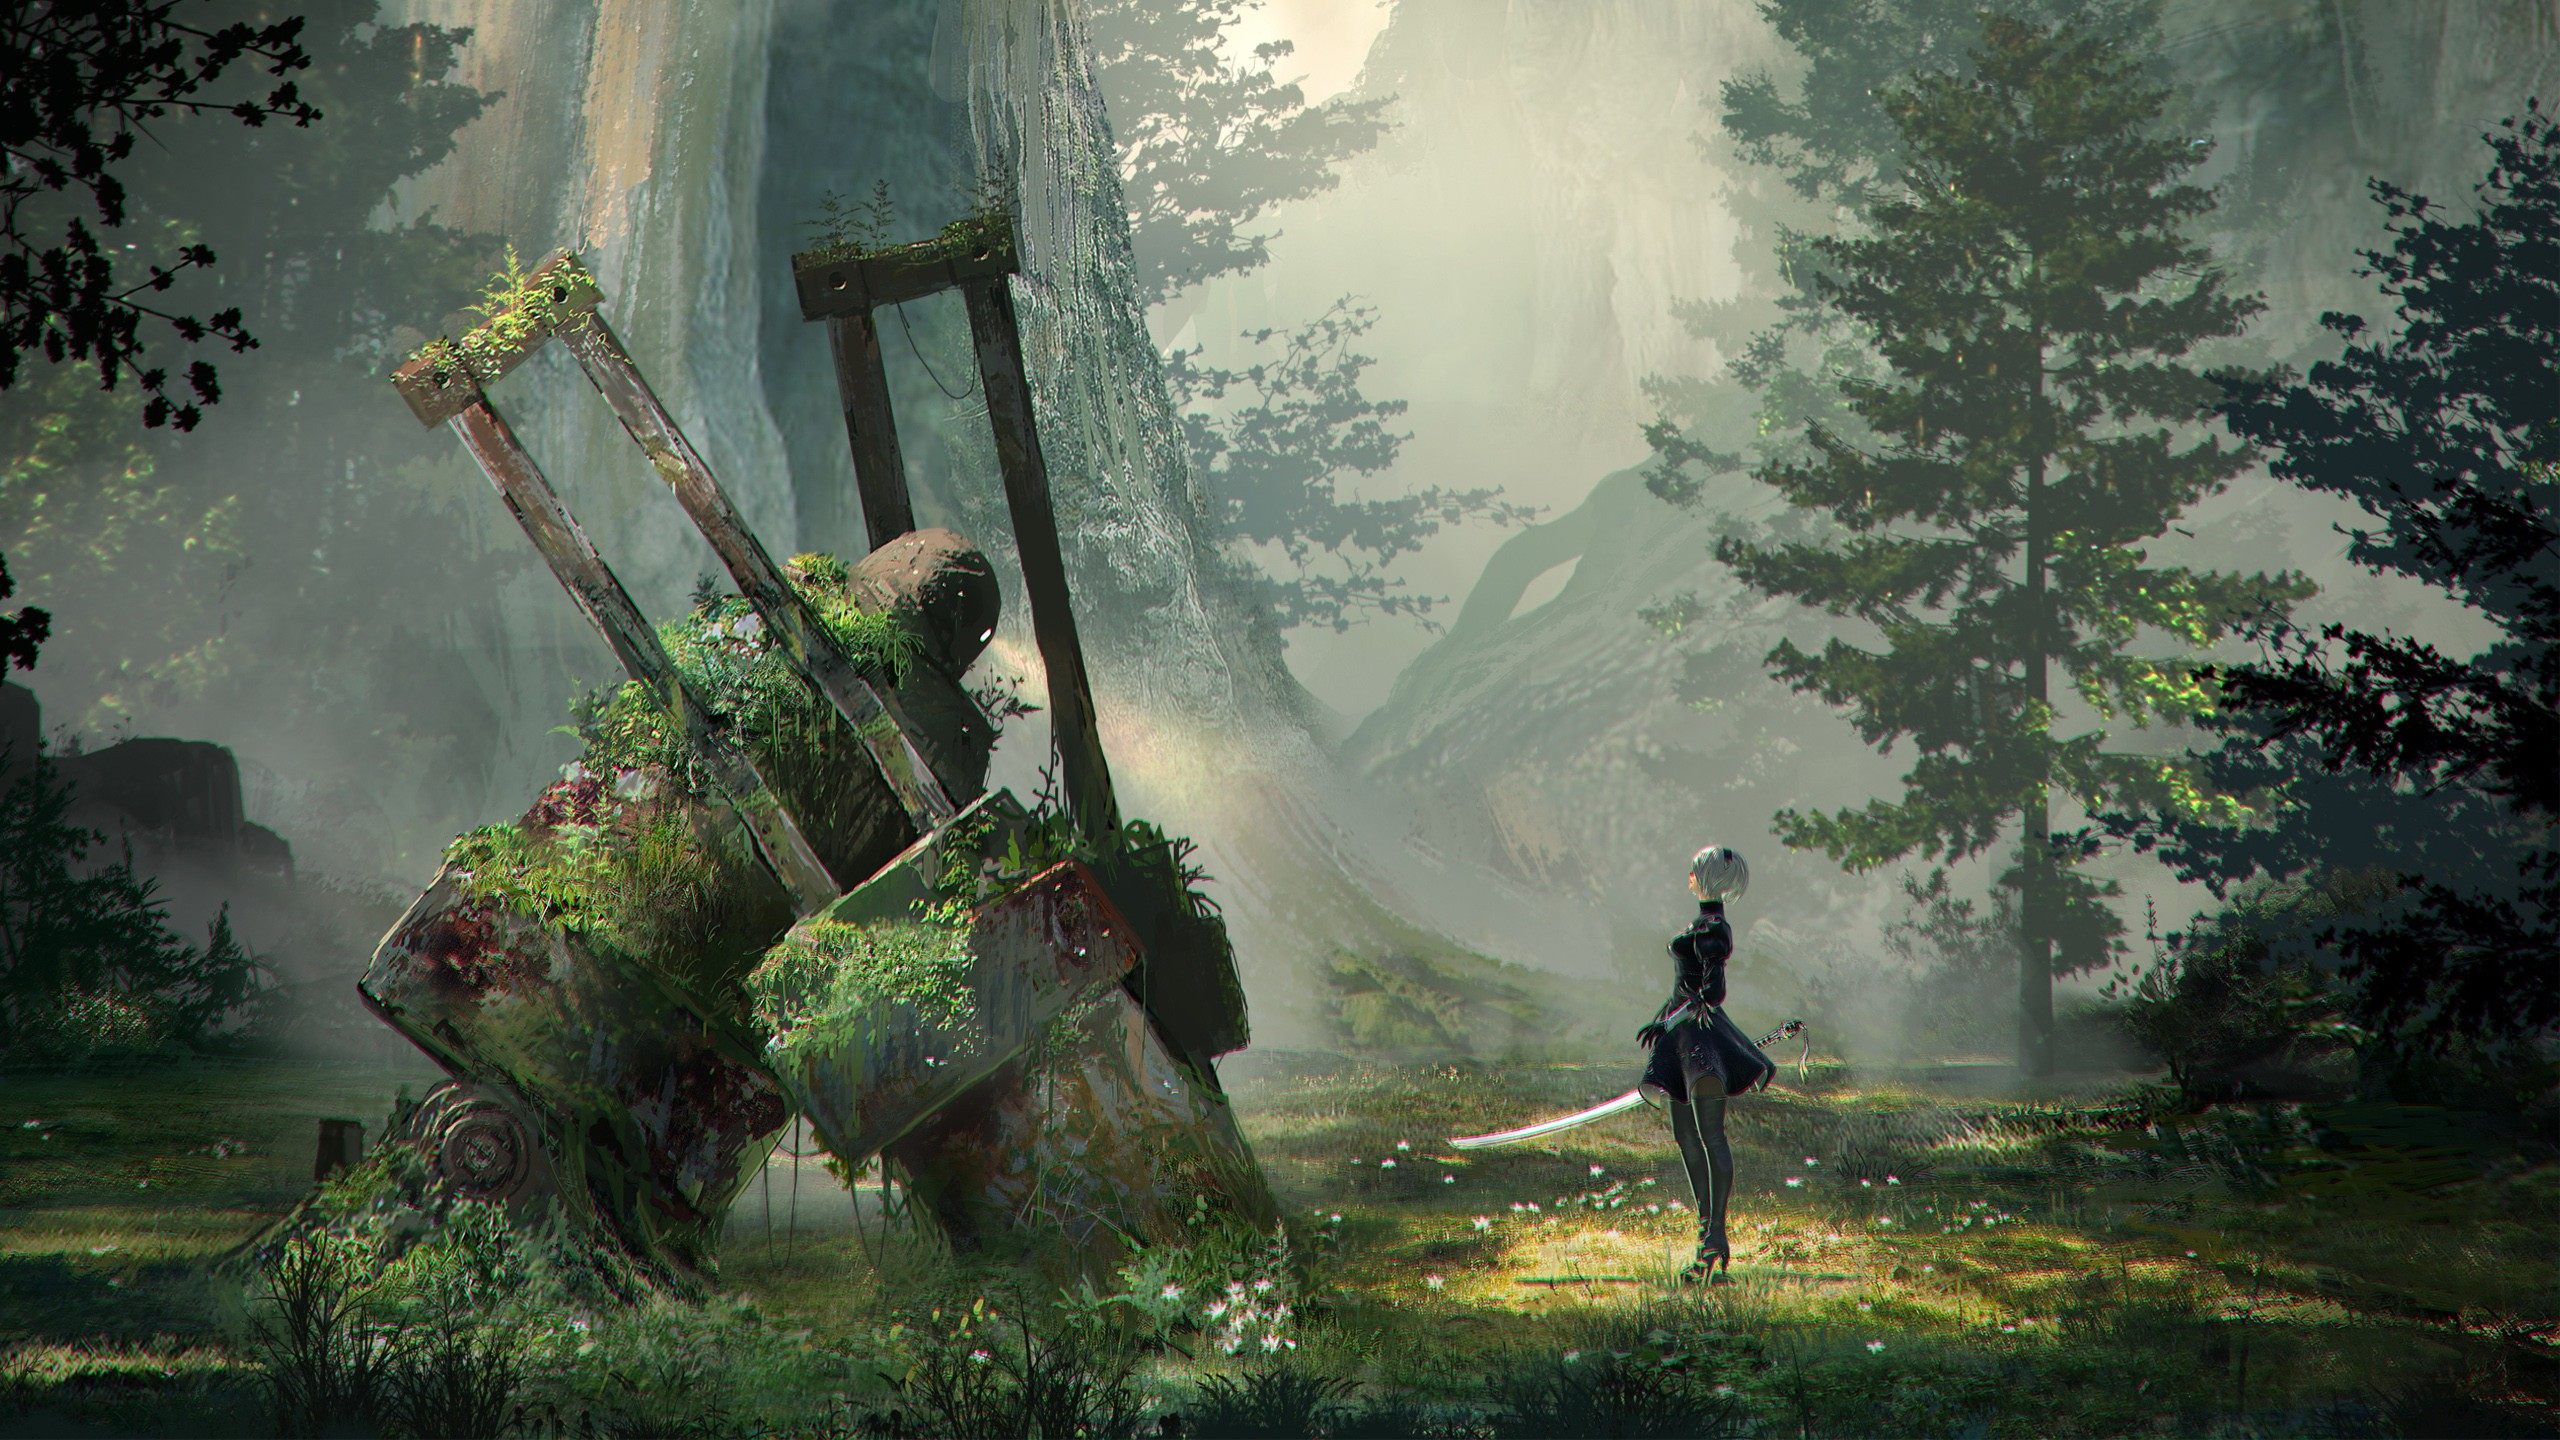 Wallpaper Iphone X Full Hd Nier Automata Concept Art Wallpapers Hd Wallpapers Id